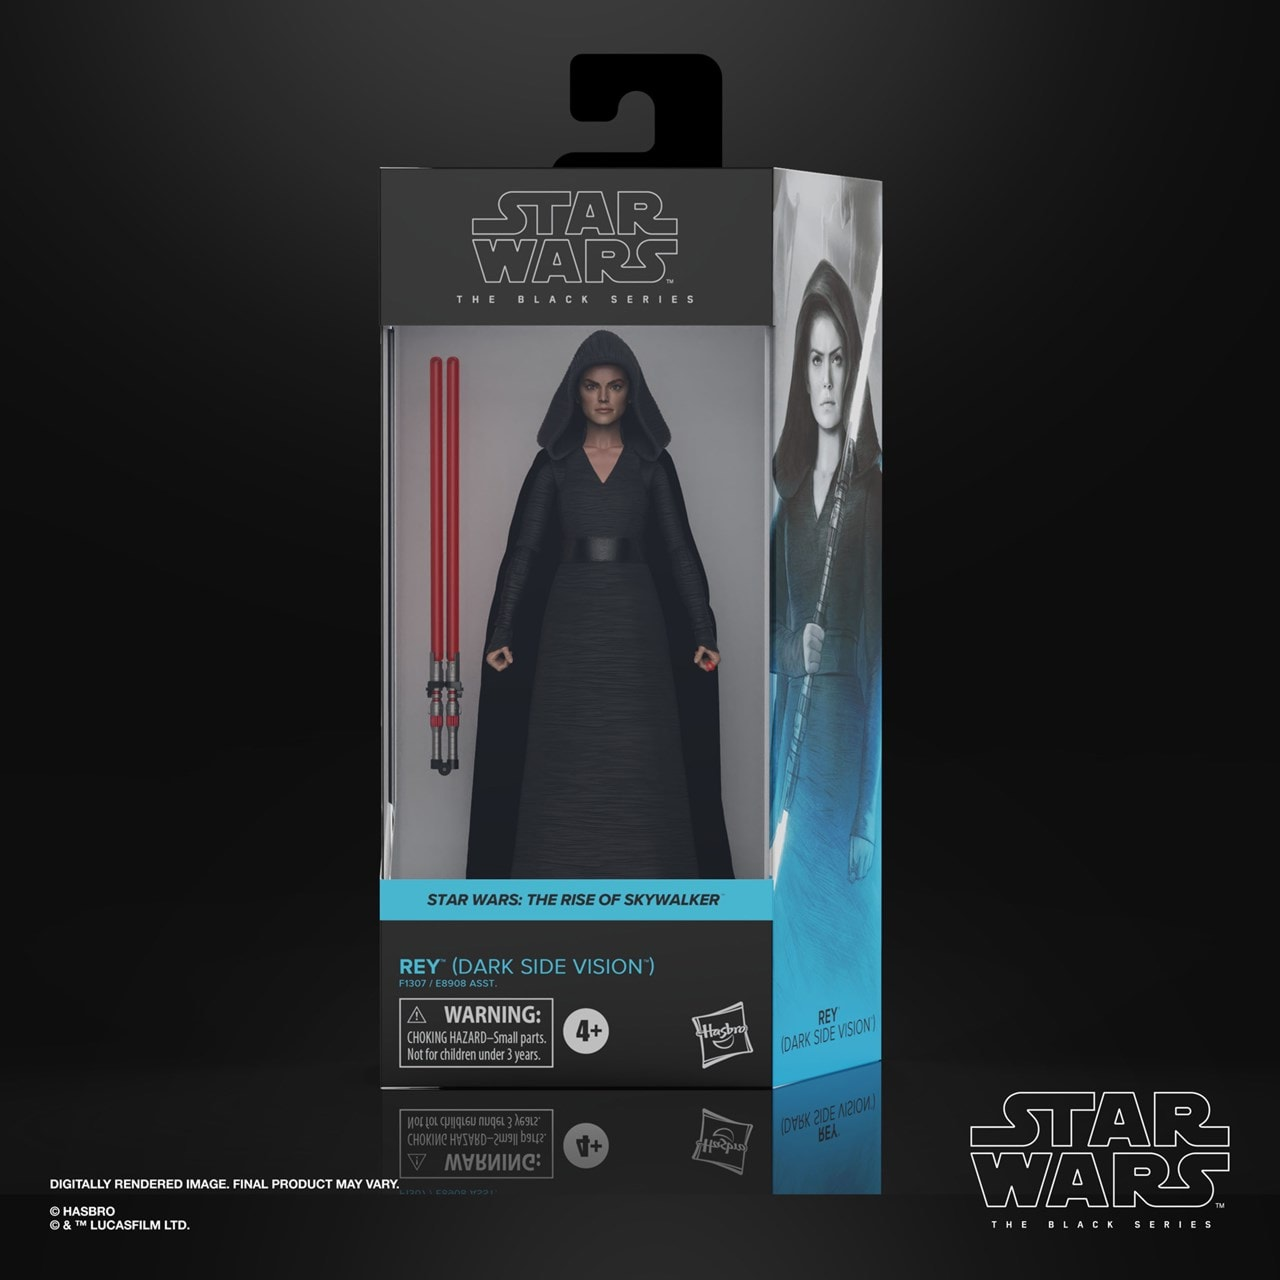 Rey (Dark Side Vision) Episode 9: The Black Series: Star Wars Action Figure - 4